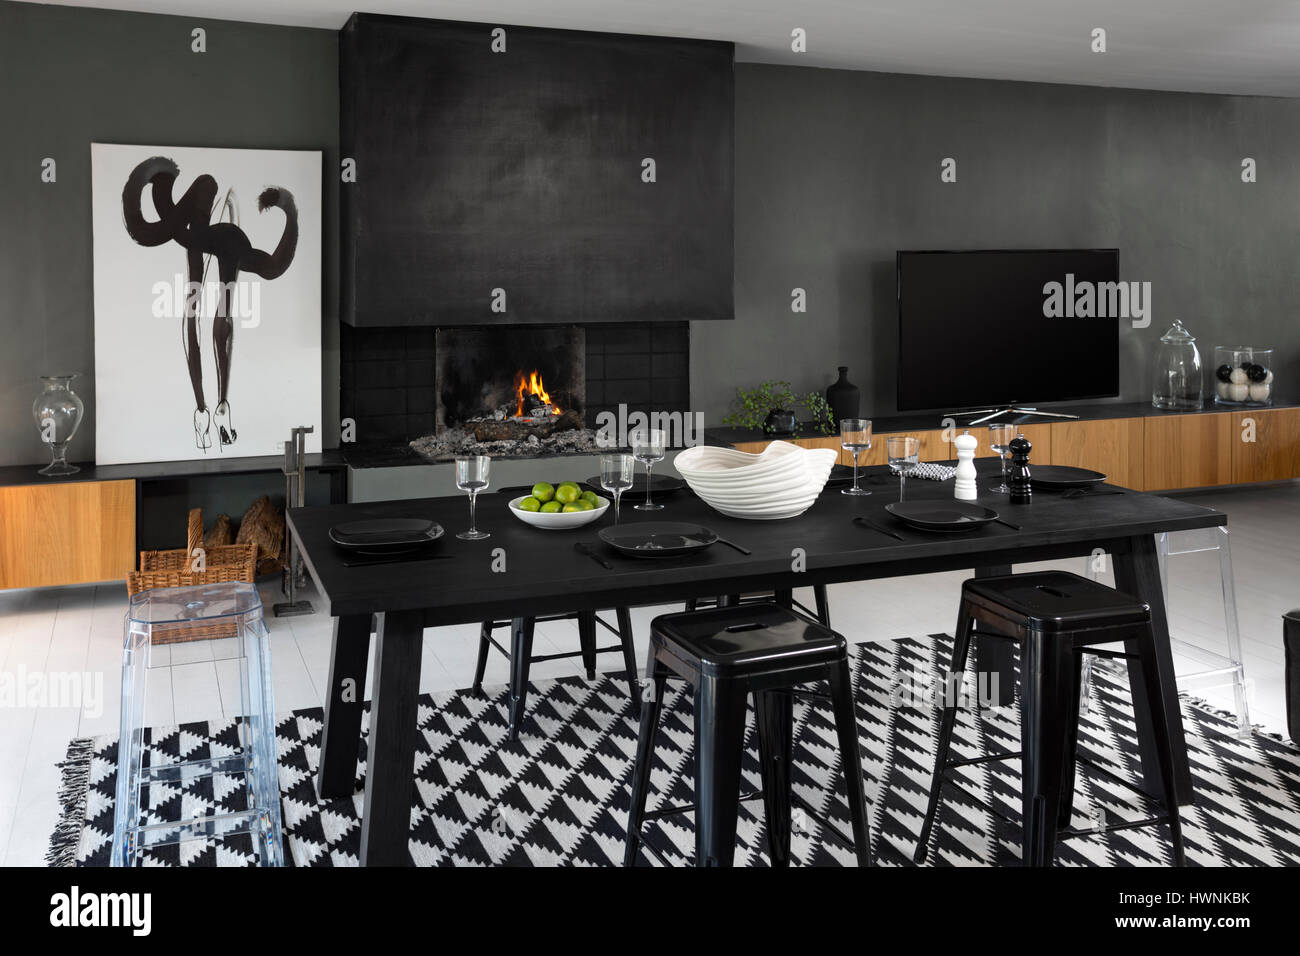 A laid out contemporary table - made out of a charred wood (shou-sugi-ban technique) - in a modern interior with - Stock Image